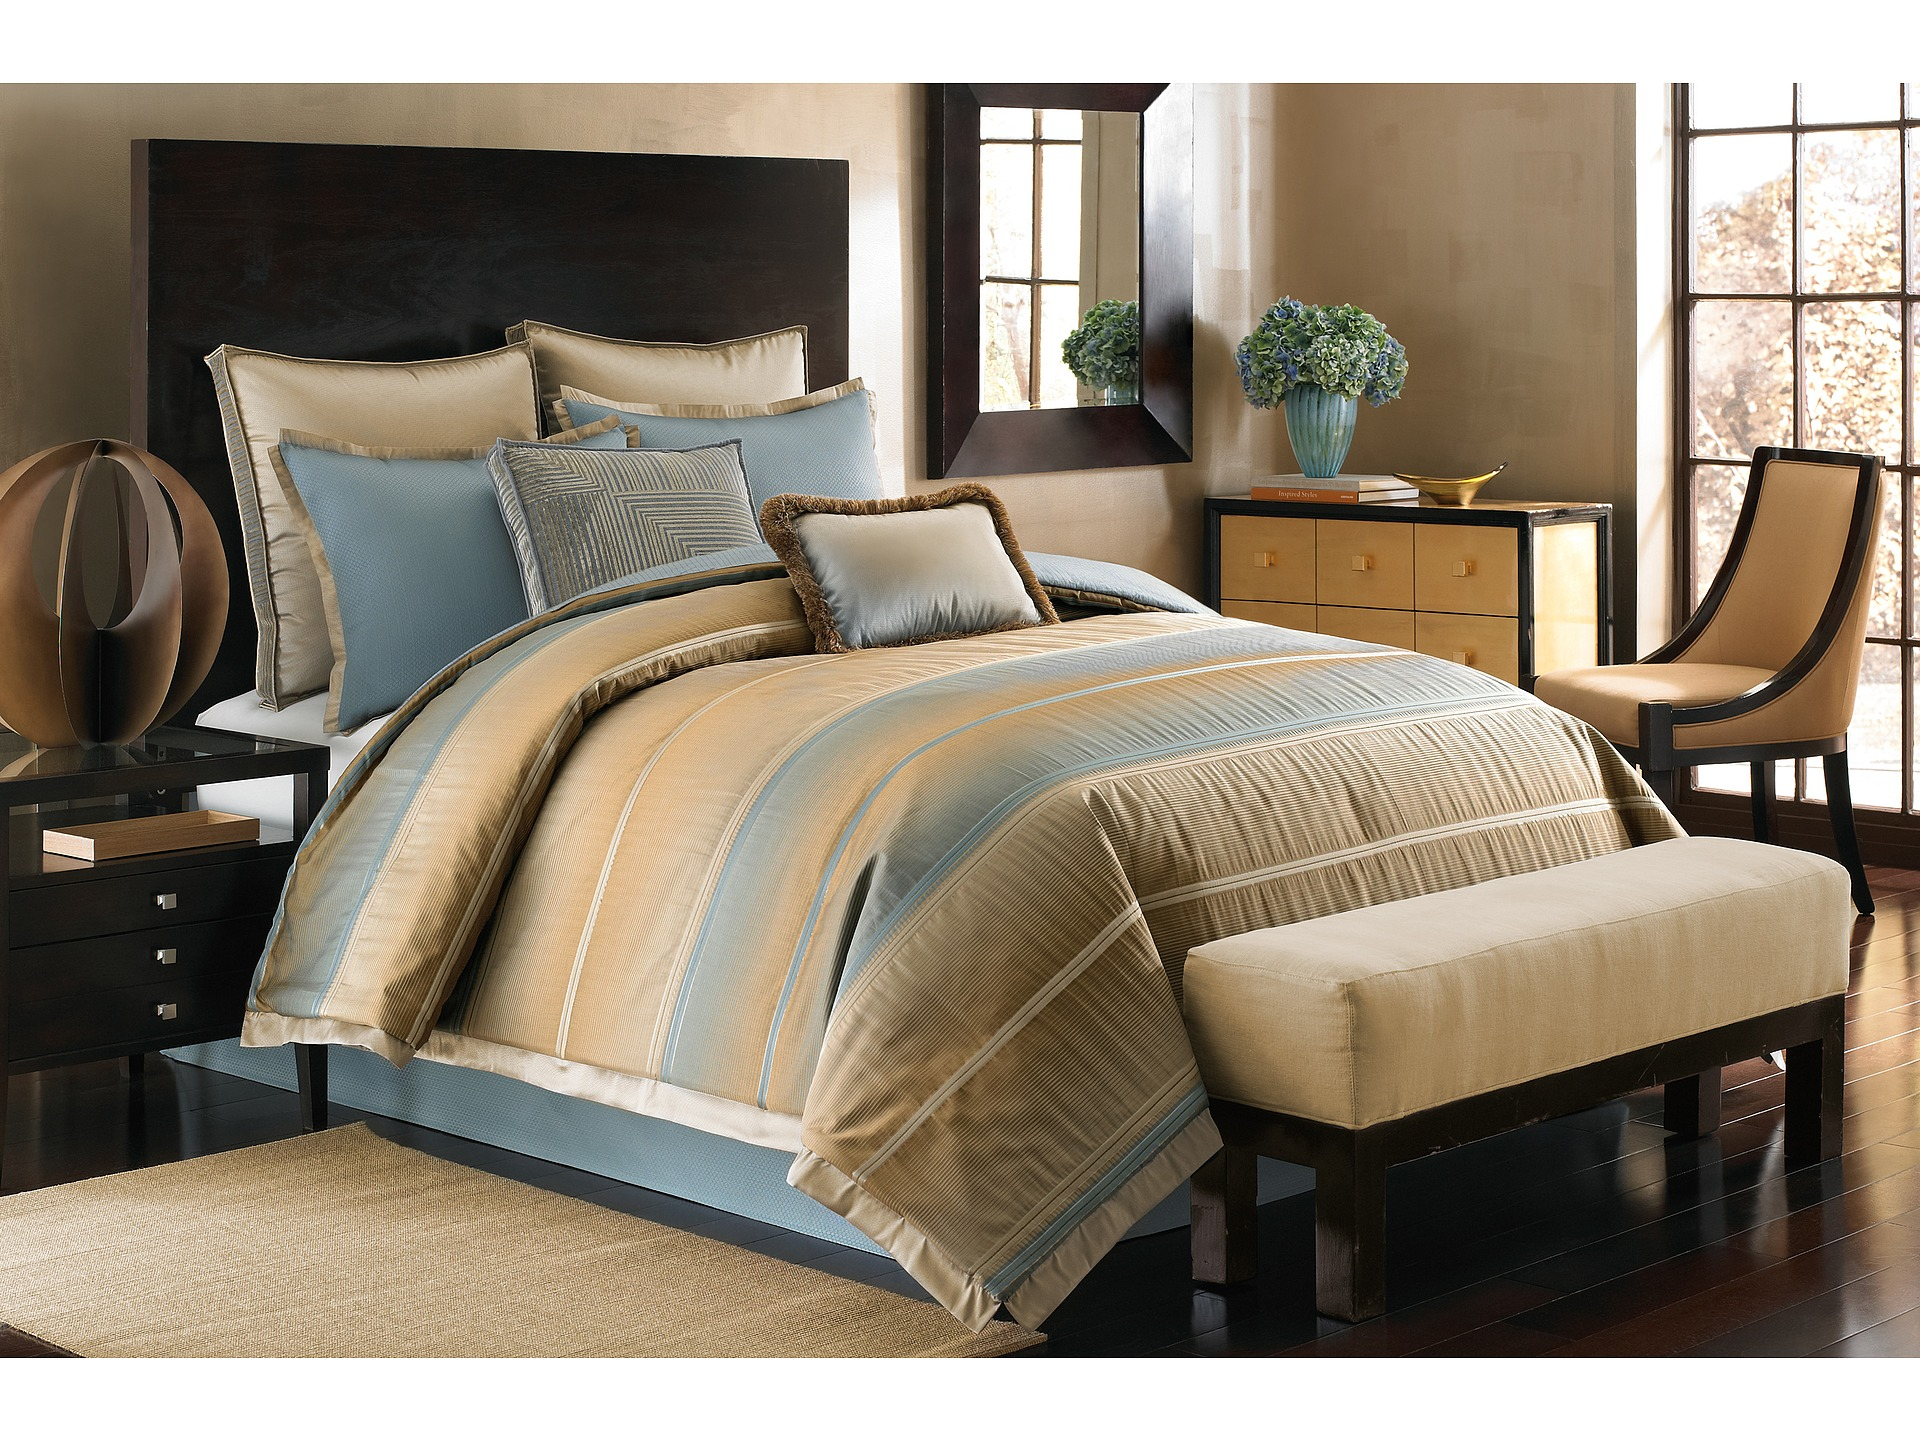 on off now set retreat camuto sale shop bedding worthy for lille bedroom comforter a beautiful vince